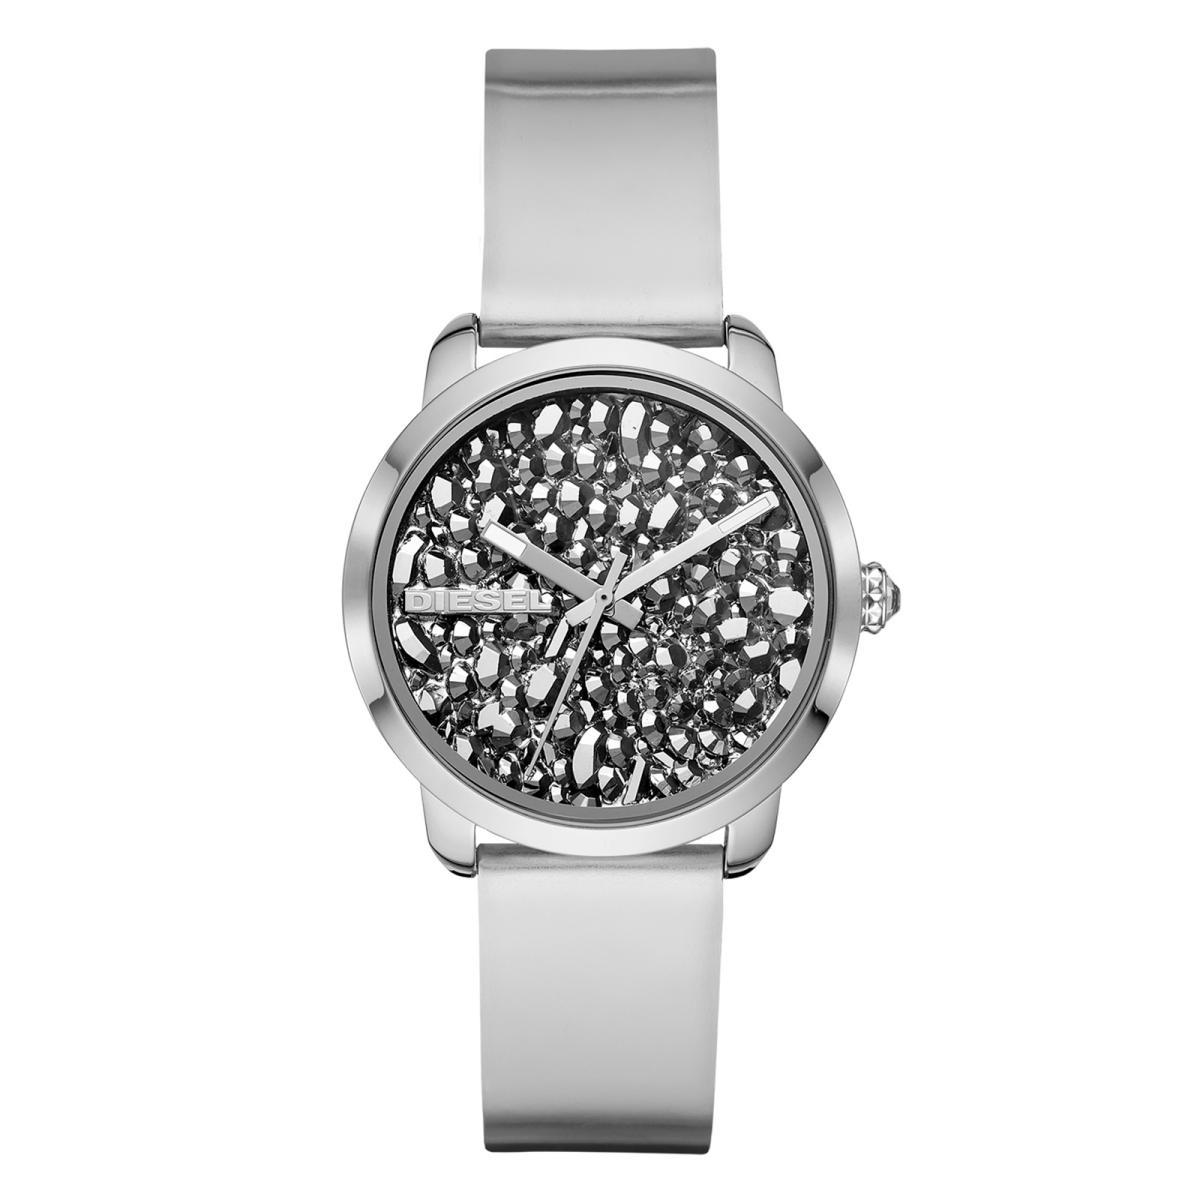 0d113490dad5 Reloj Diesel - DZ5582 - Mujer - Time Square